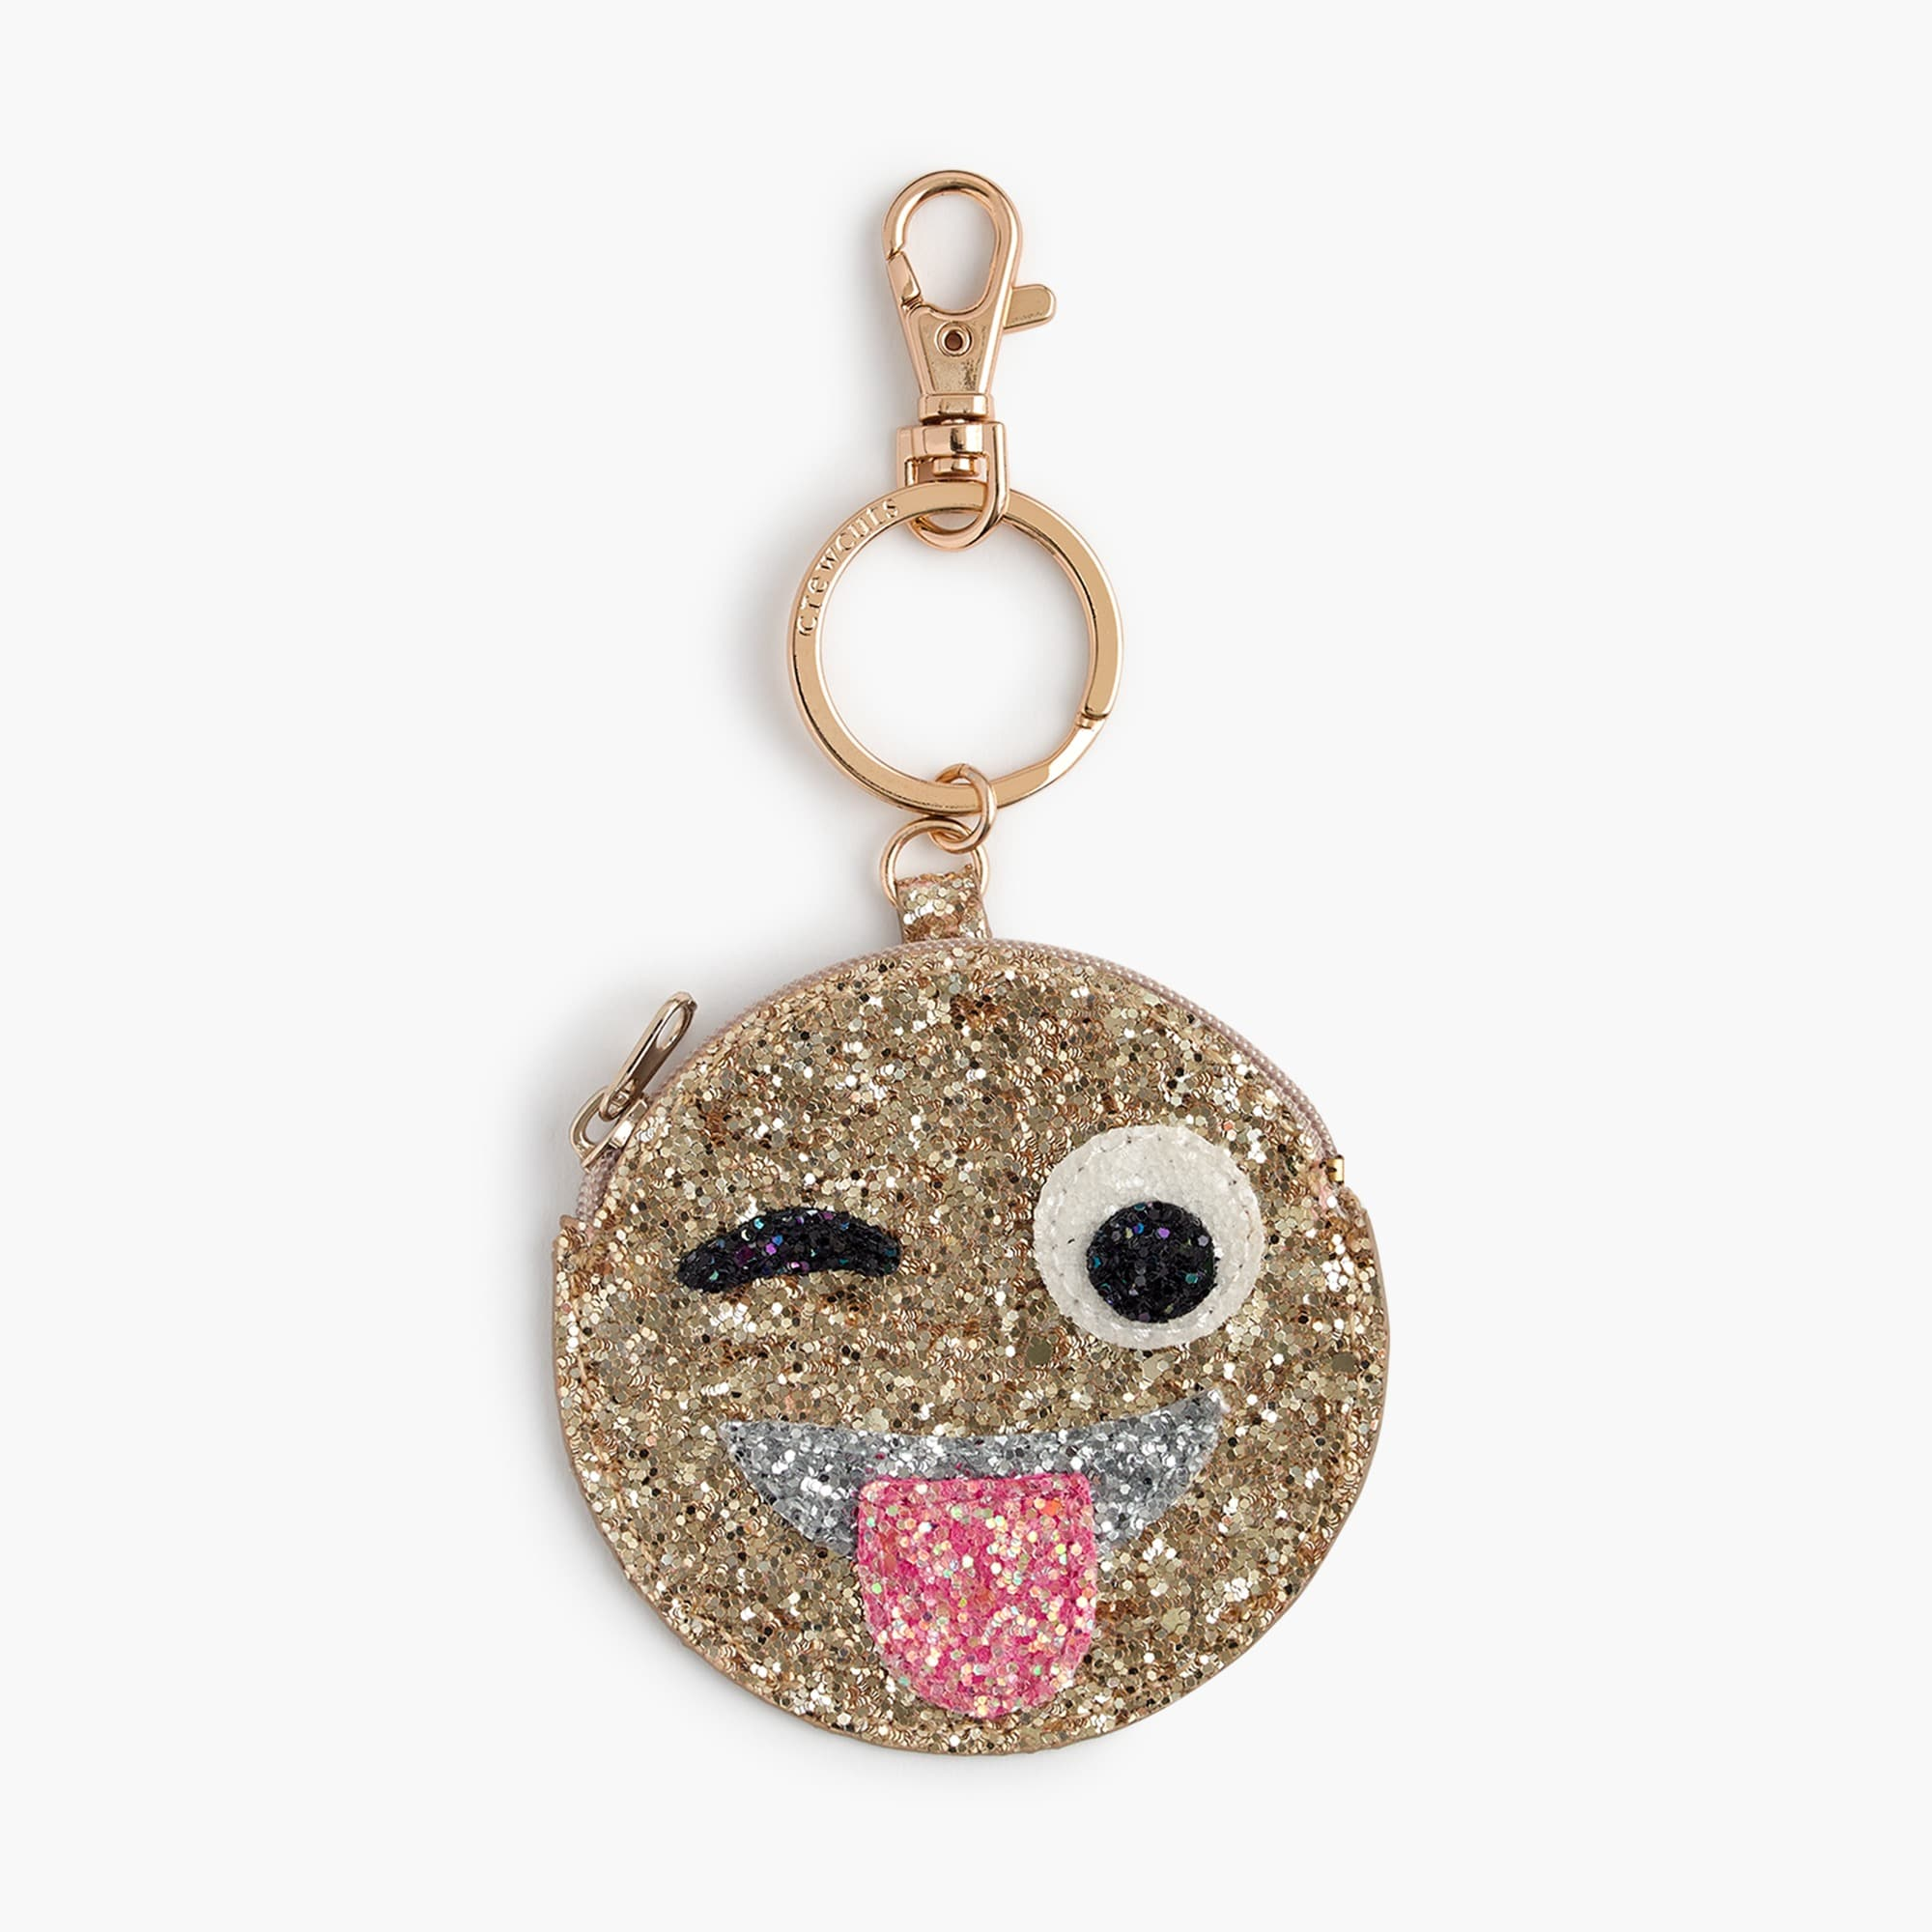 Kids' glitter coin purse girl jewelry & accessories c